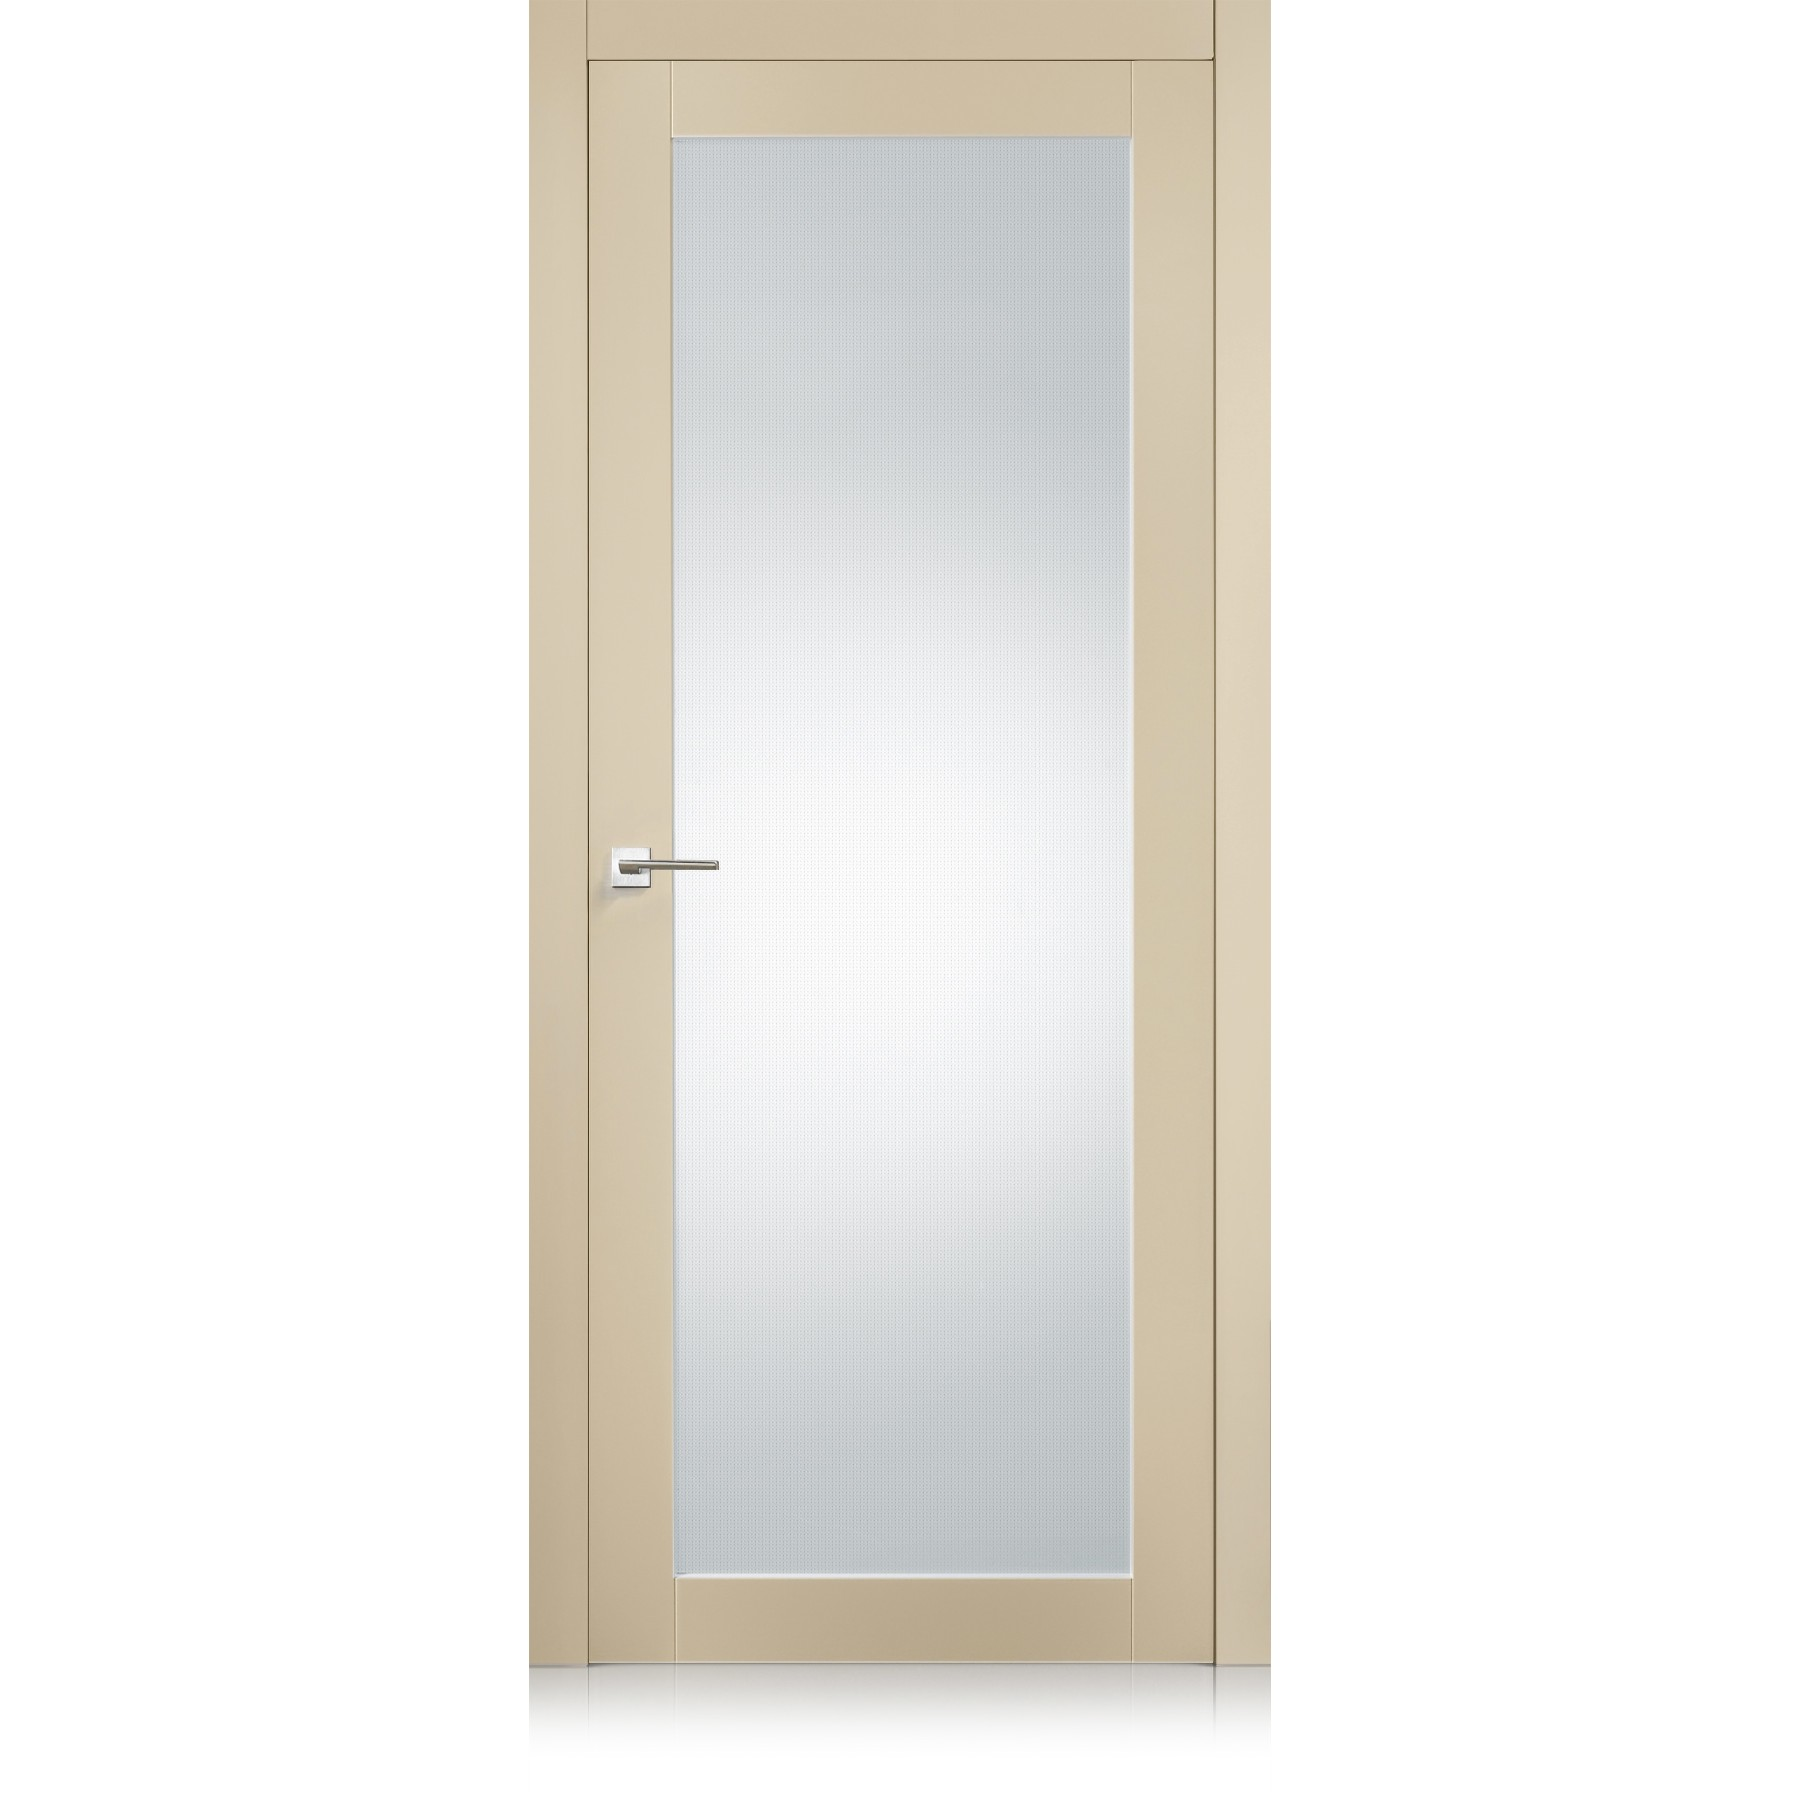 Suite / 7 cremy door